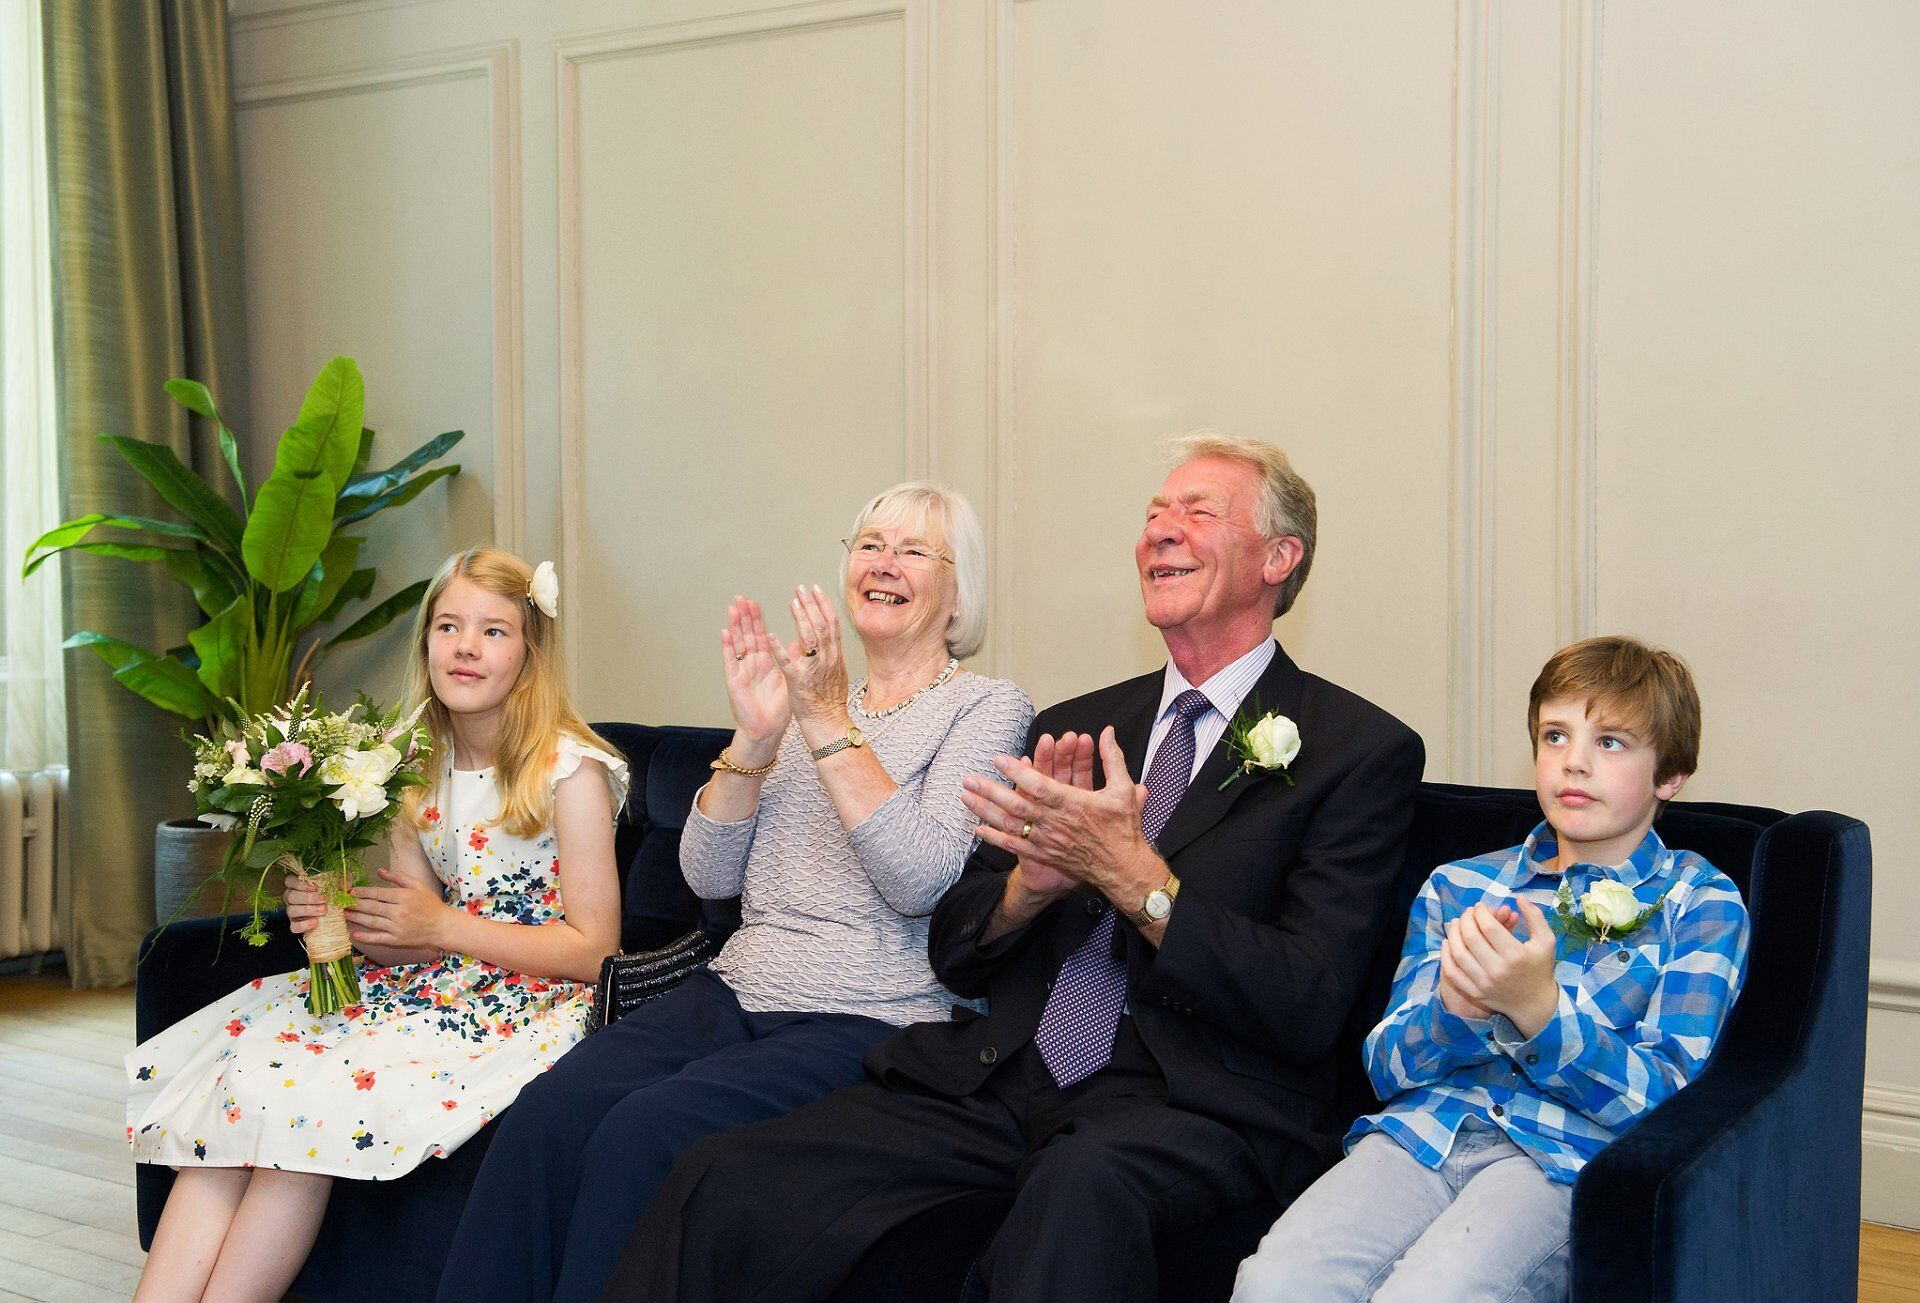 soho room wedding photography and guests applauding the bride and groom after they have said their vows